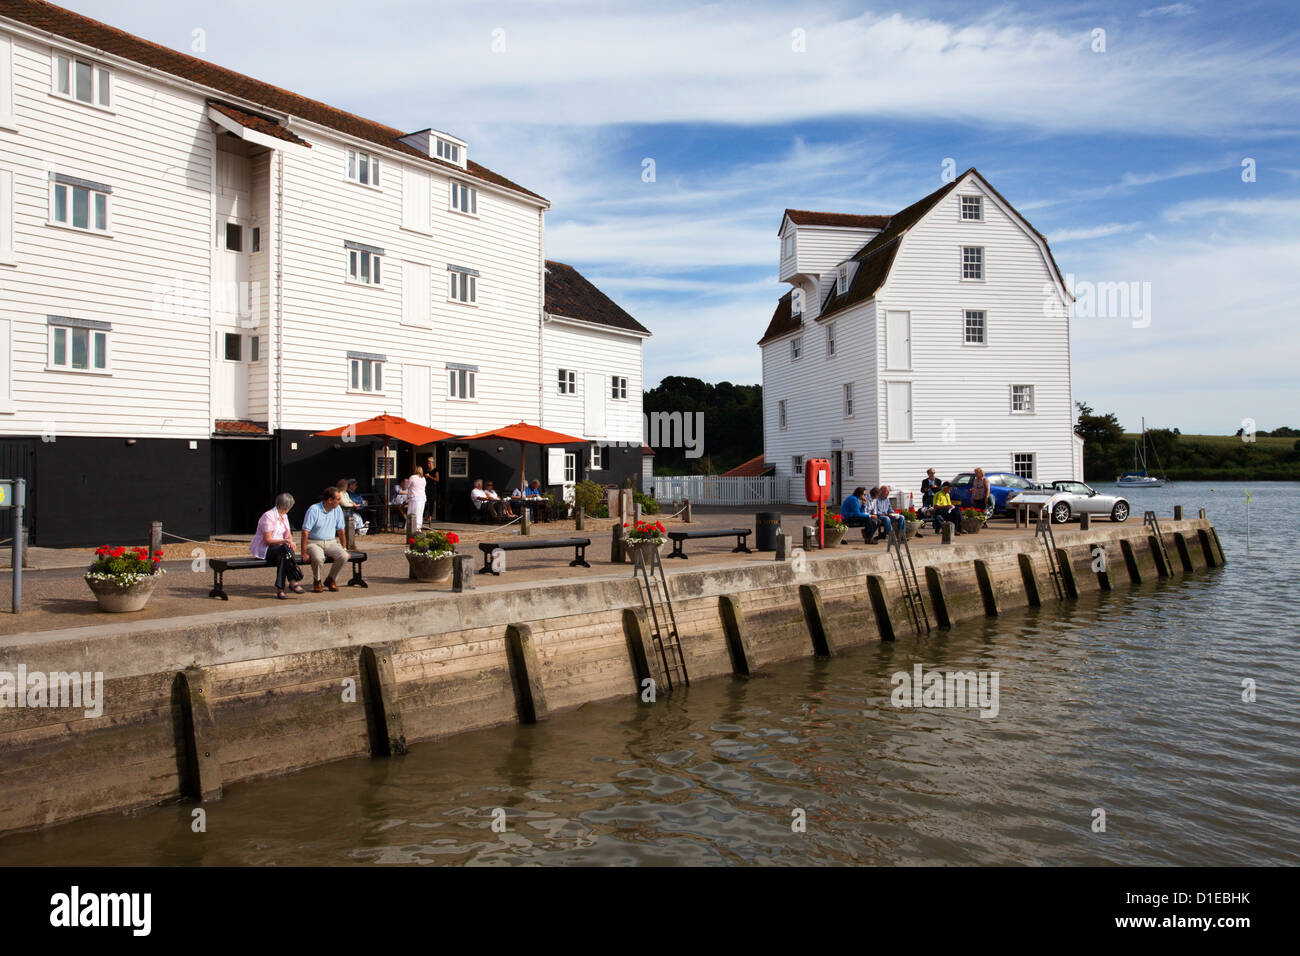 Quayside and the Tide Mill Living Museum at Woodbridge Riverside, Woodbridge, Suffolk, England, United Kingdom, - Stock Image